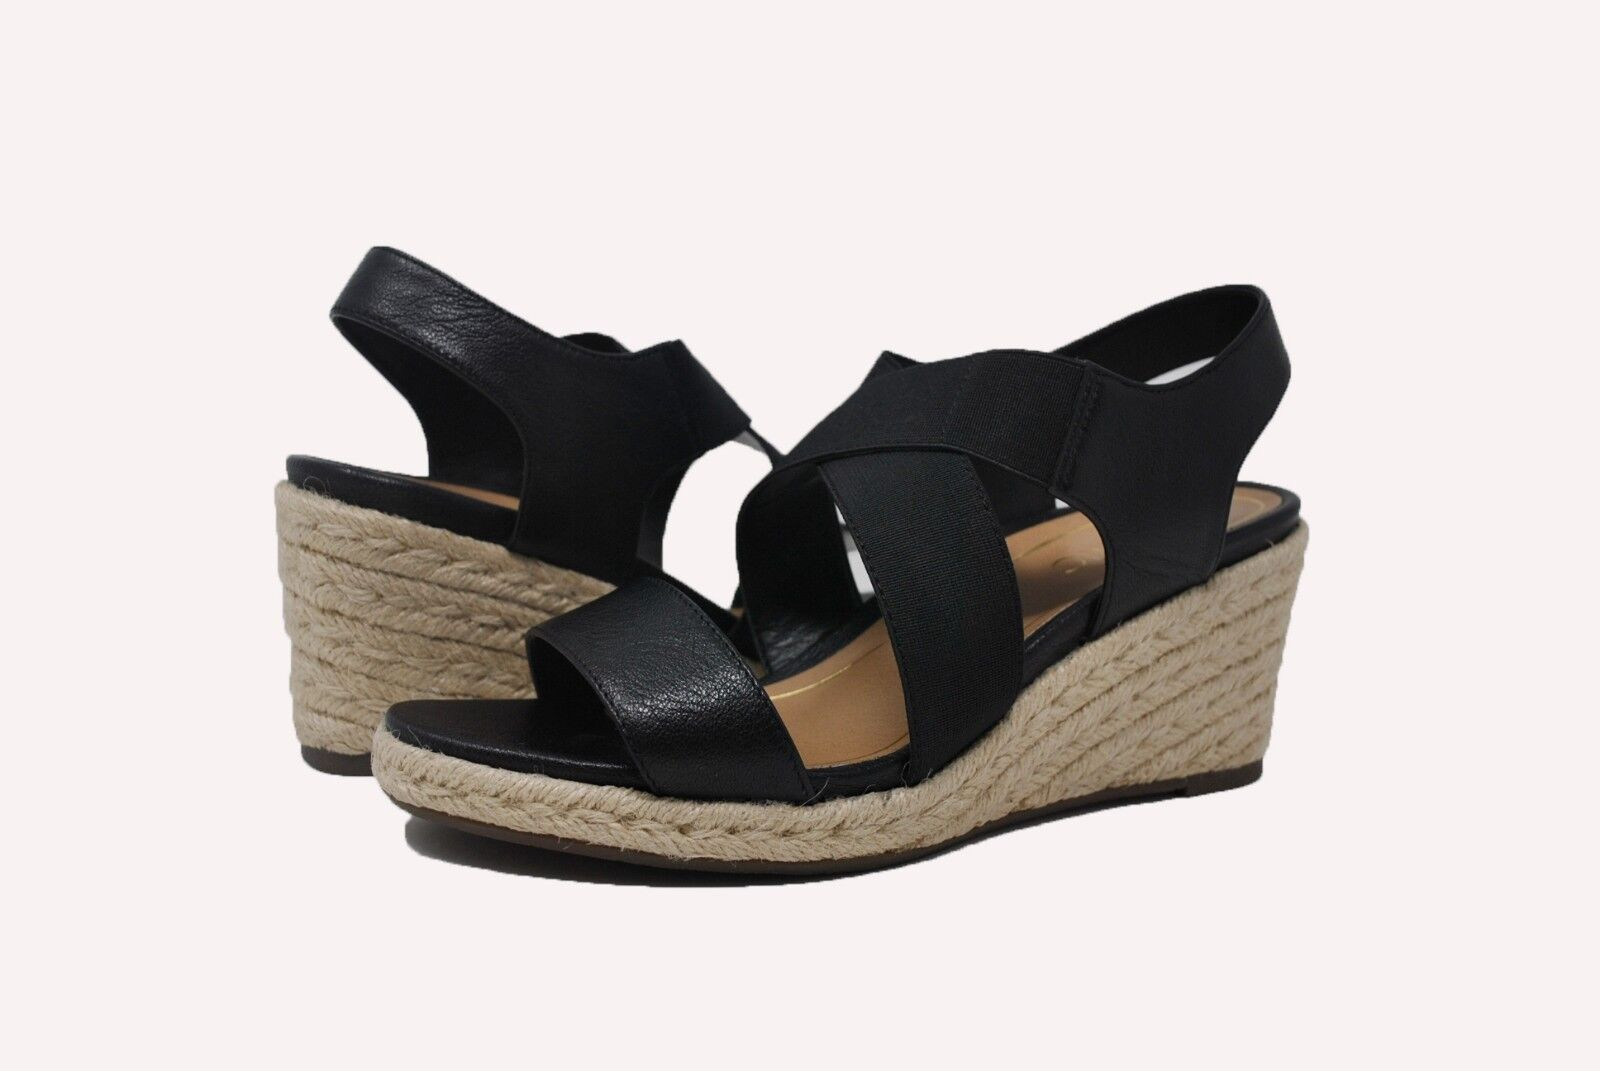 6accd3dfffc8 Vionic Ainsleigh Leather Espadrille Wedge Sandals Women s Size 8 Black  Damaged for sale online